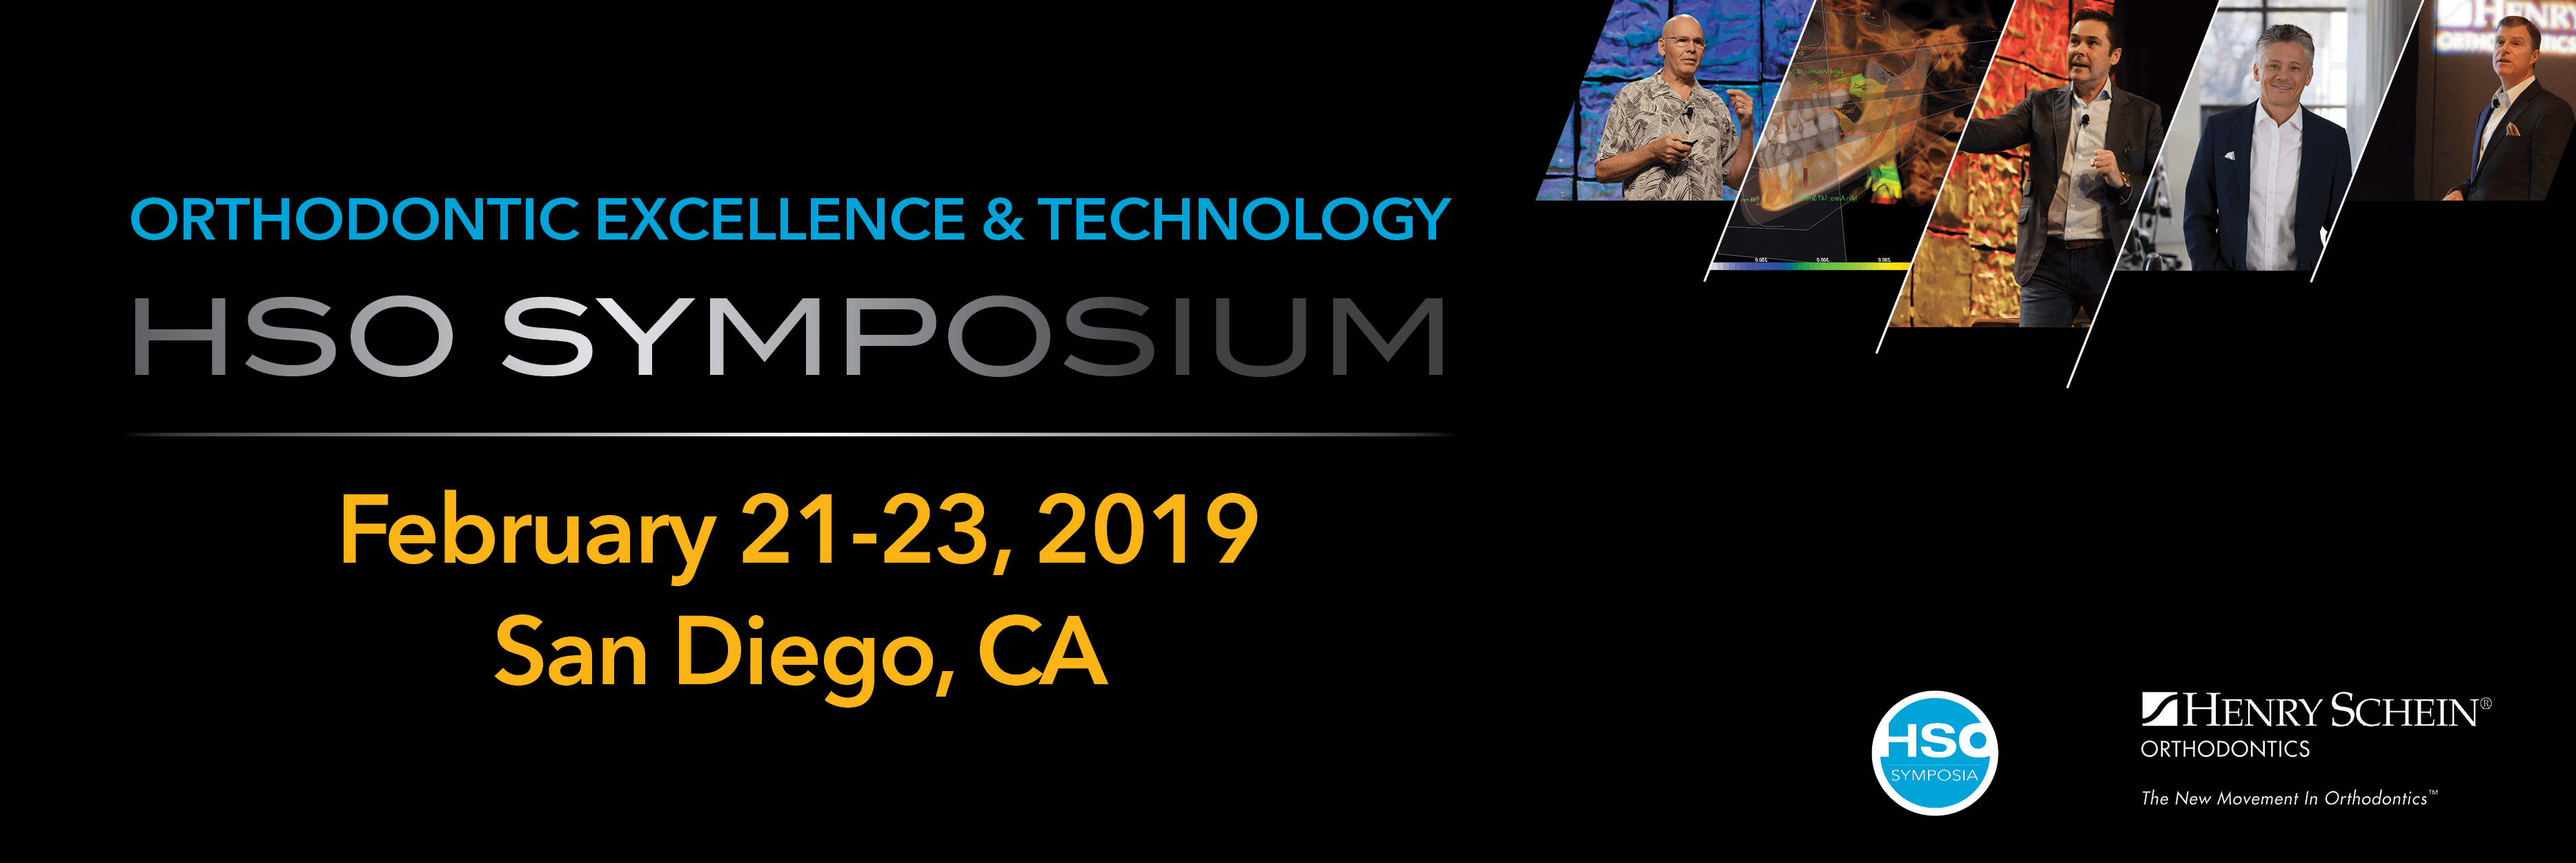 2019 HSO Orthodontic Excellence & Technology Symposium